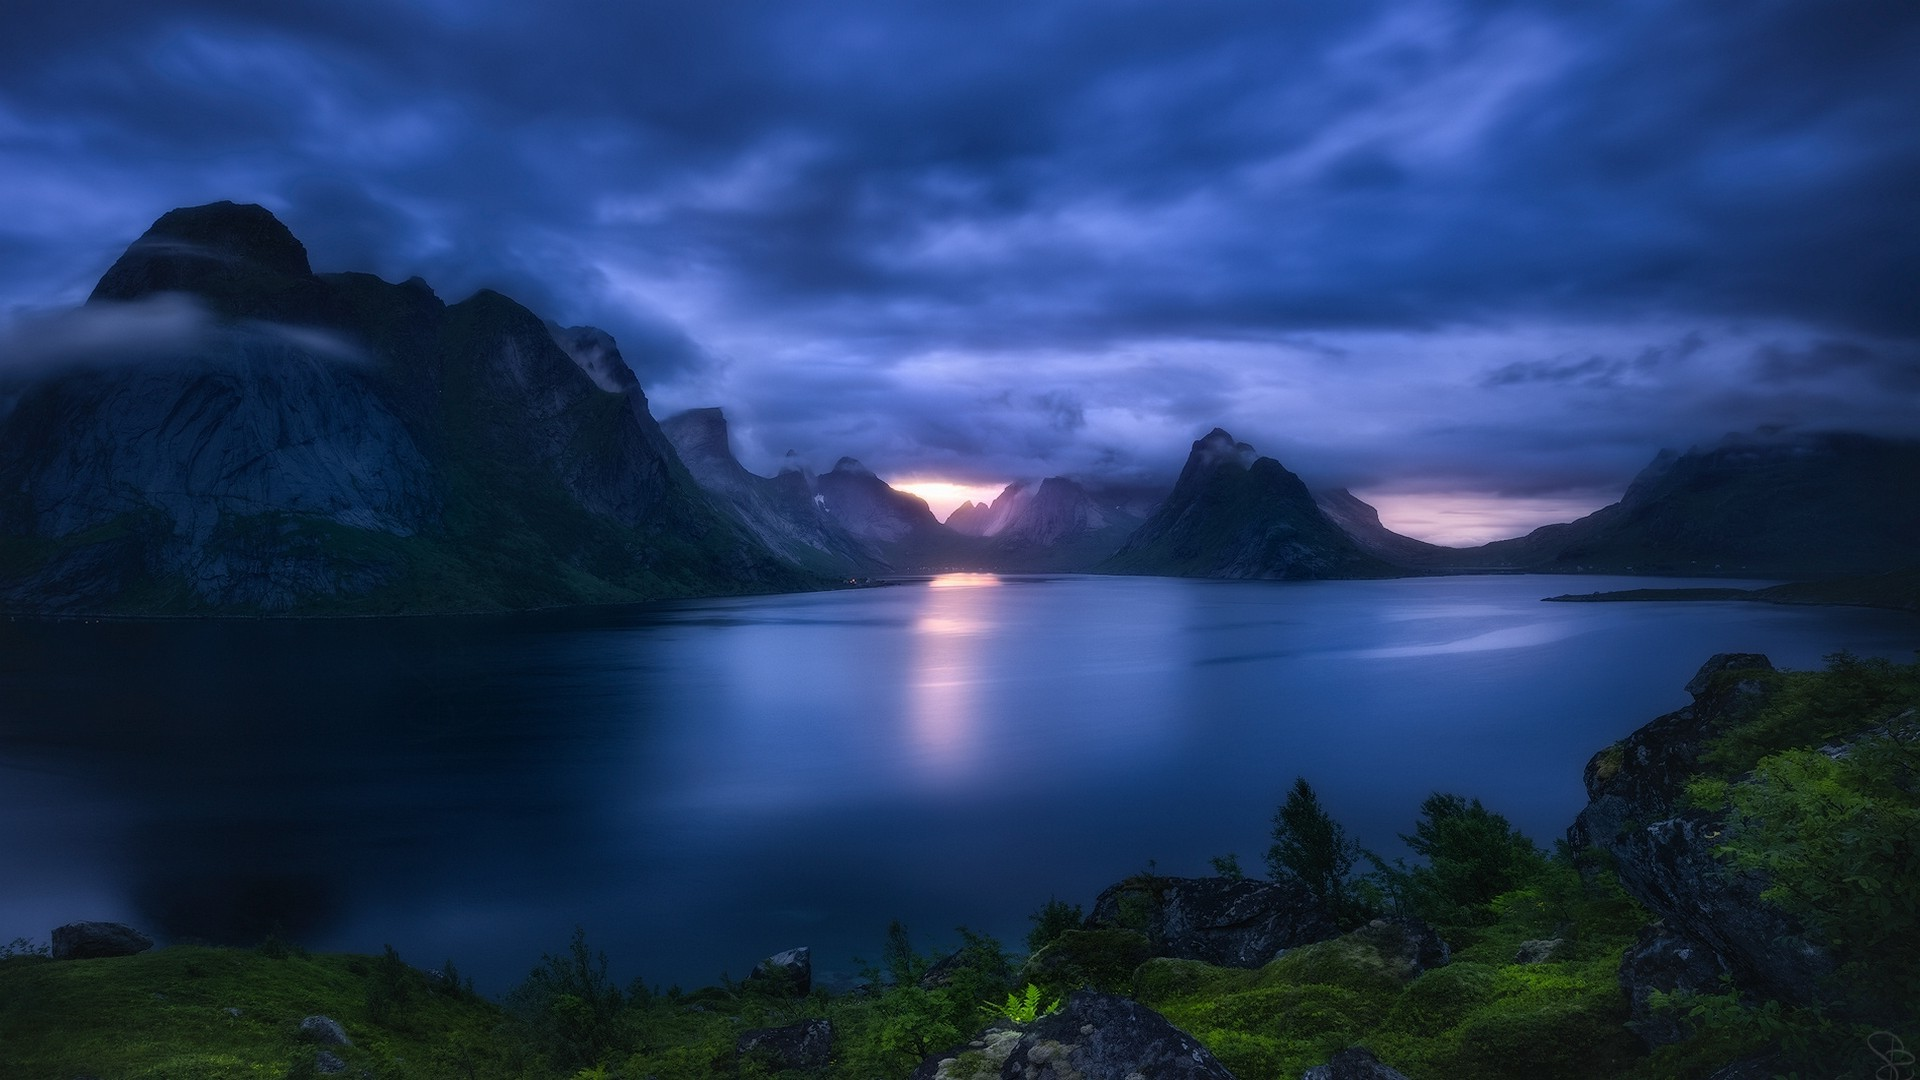 New 3d Hd Wallpapers For Pc Nature Landscape Fjord Lofoten Islands Norway Sunset